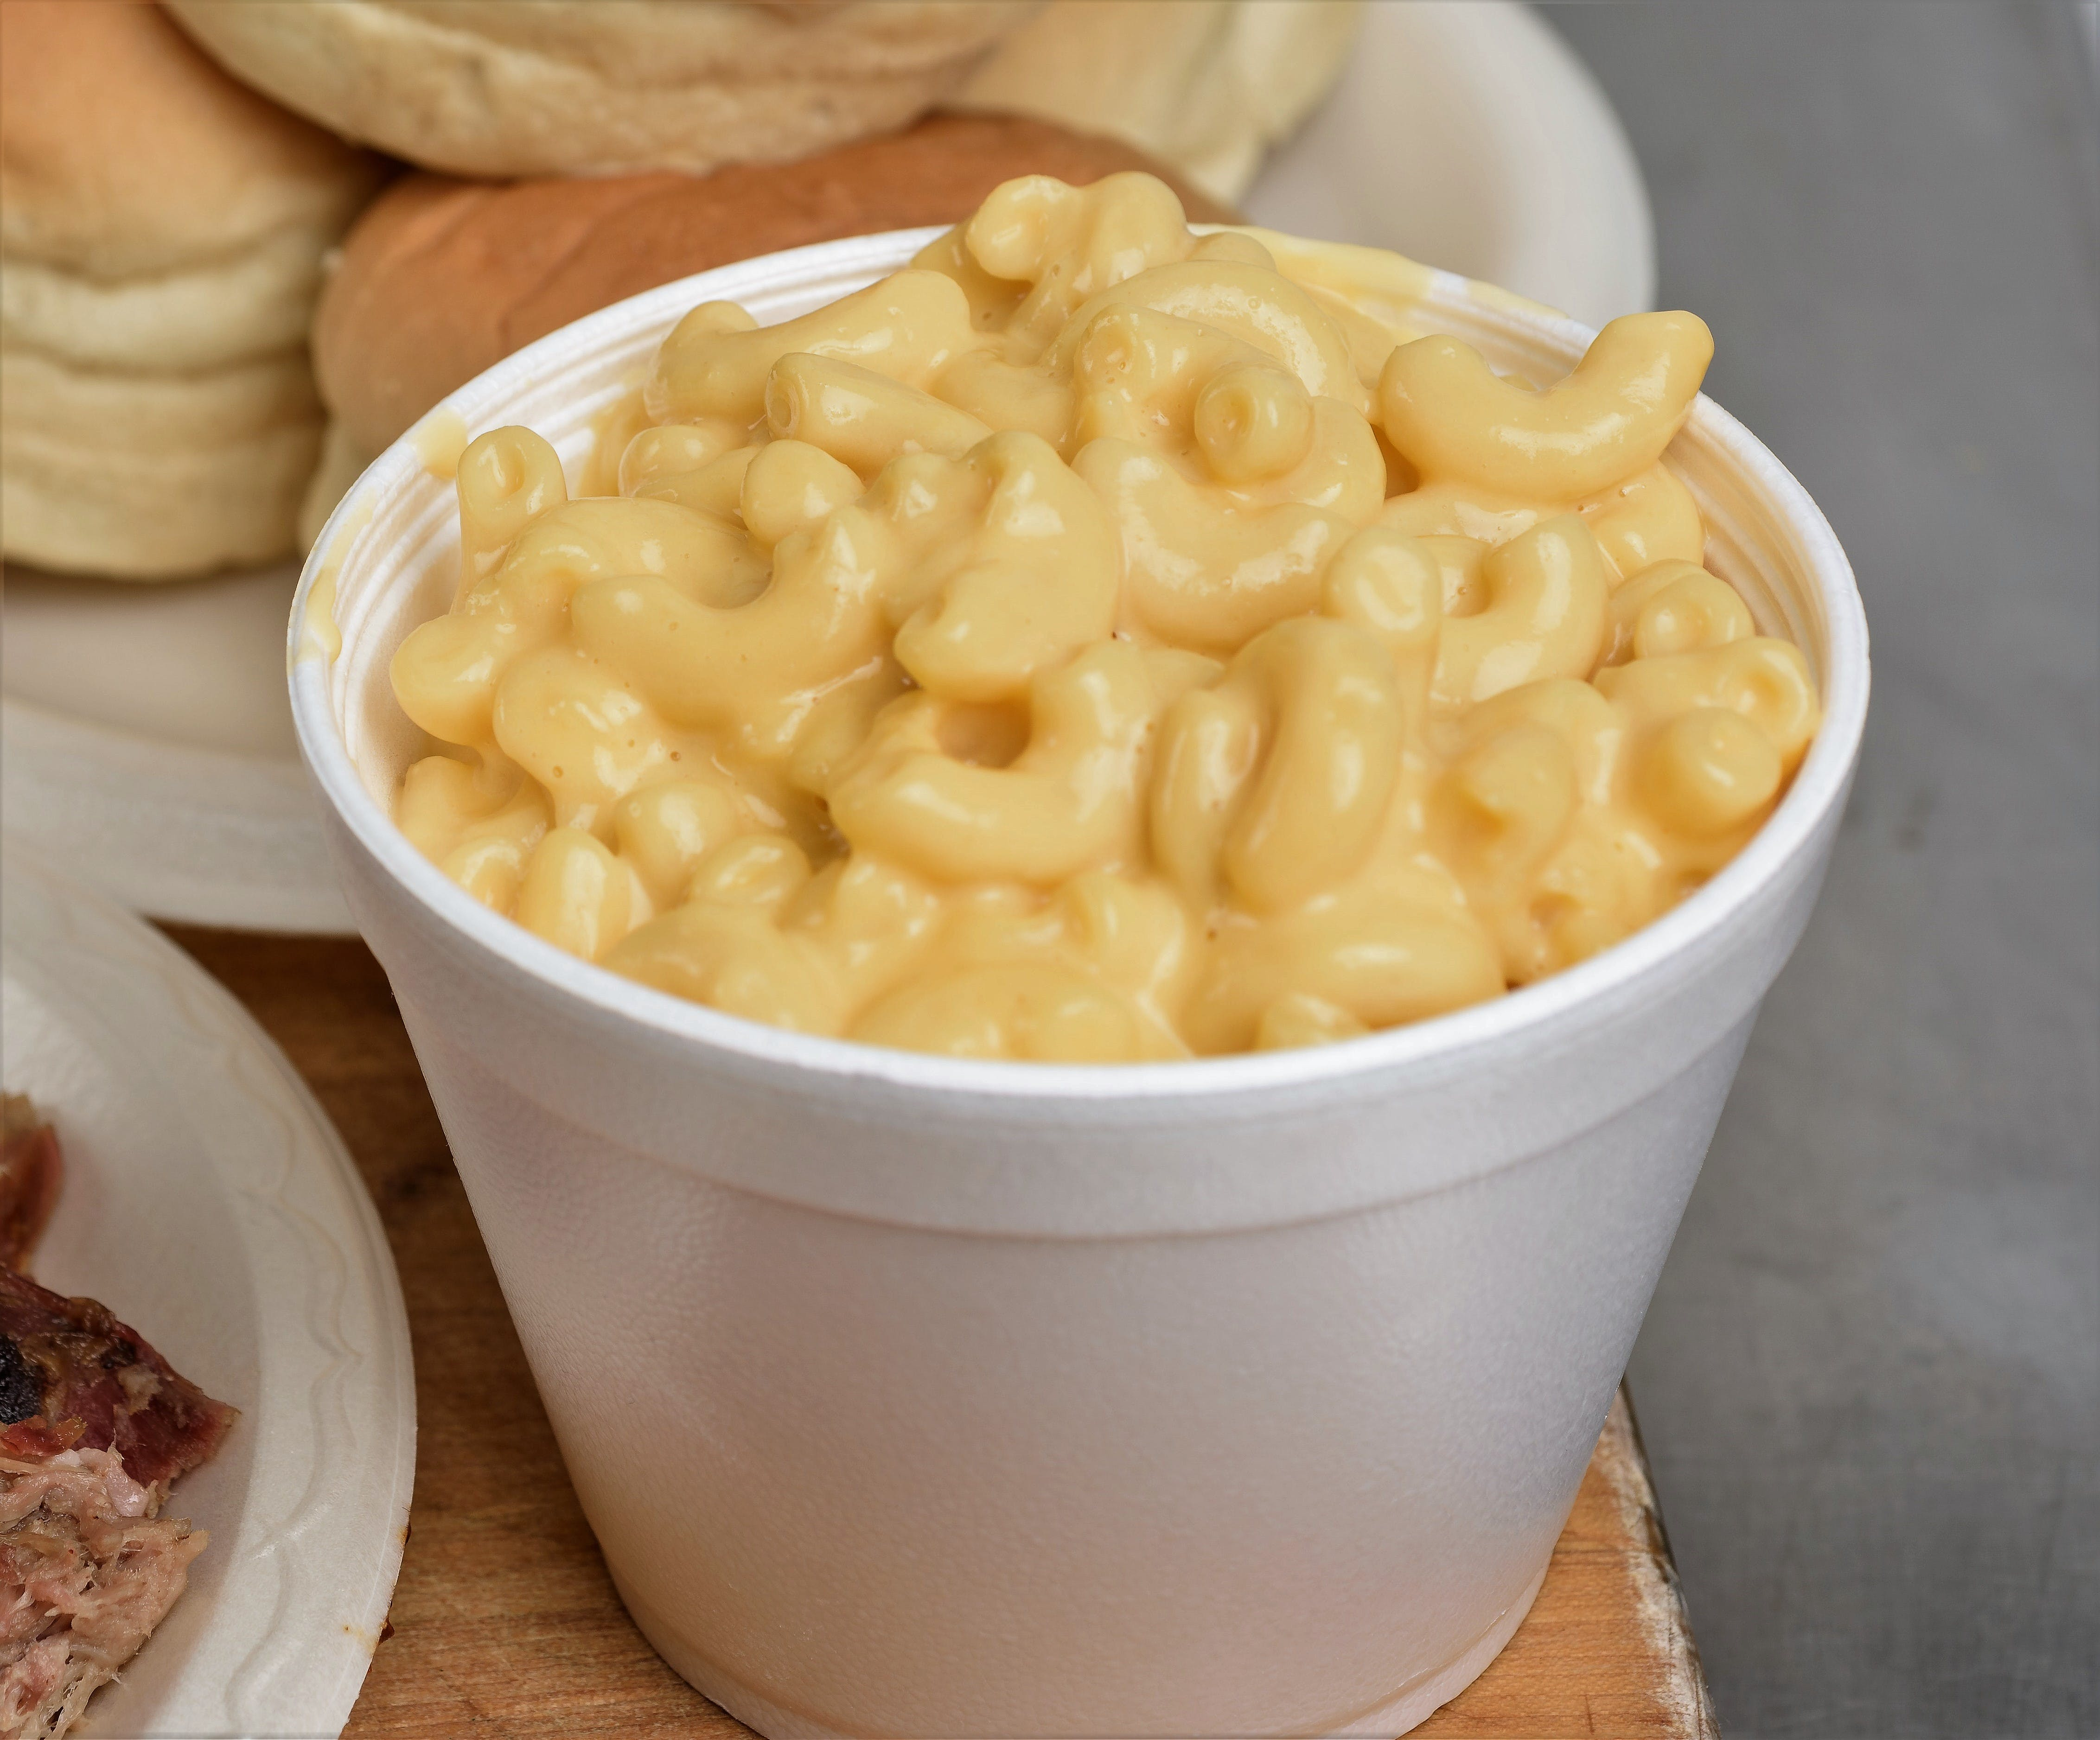 Mac & Cheese from Hog Wild Pit BBQ & Catering in Lawrence, KS